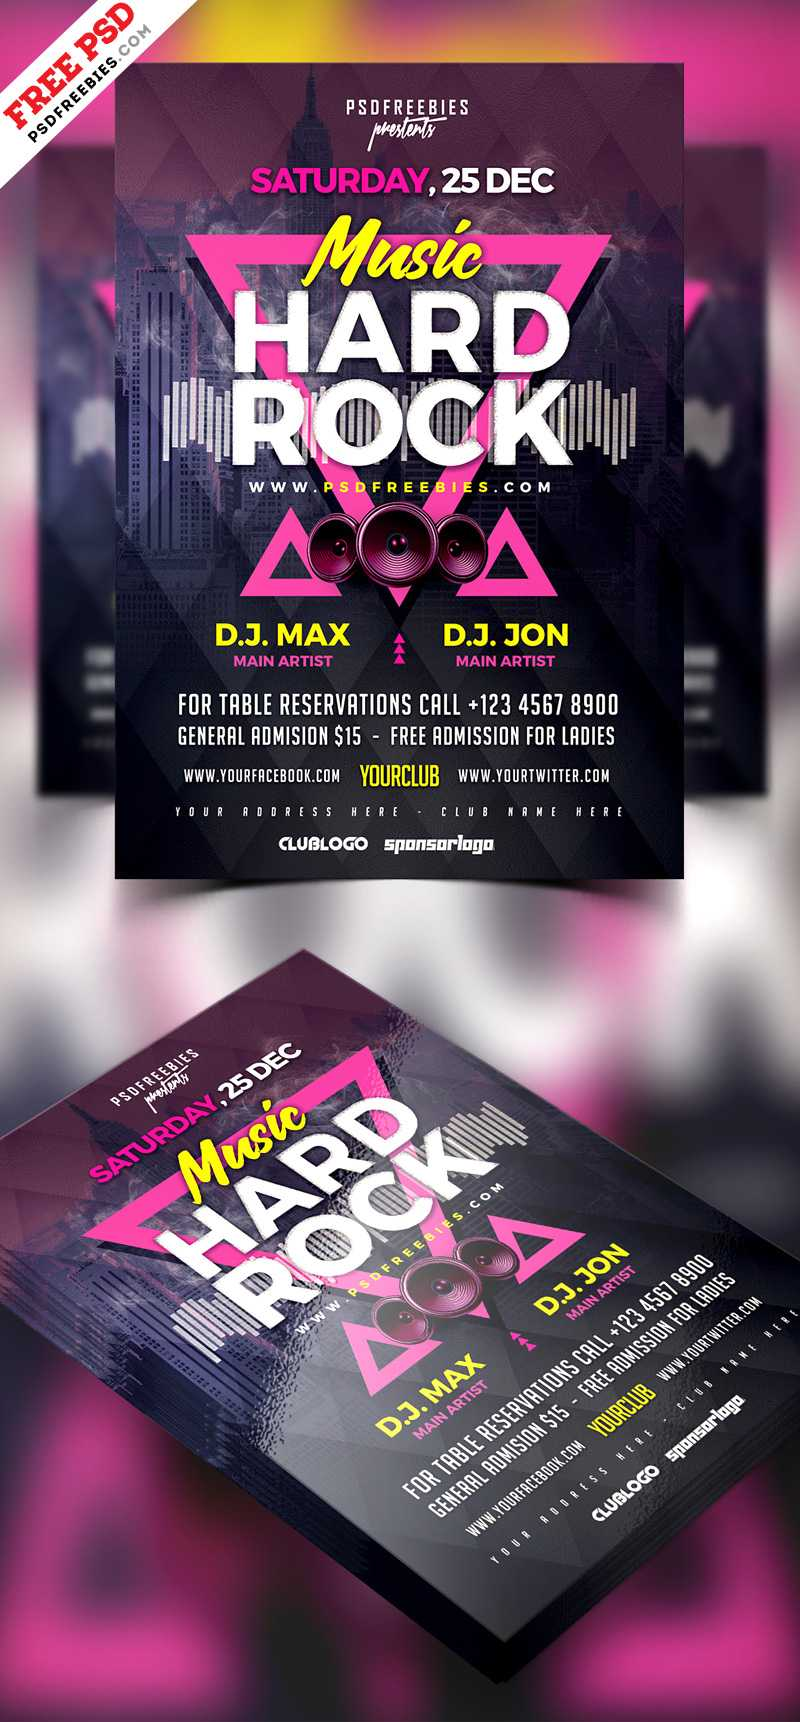 Rock Music Concert Flyer Template Psd | Psdfreebies Within Concert Flyer Template Free